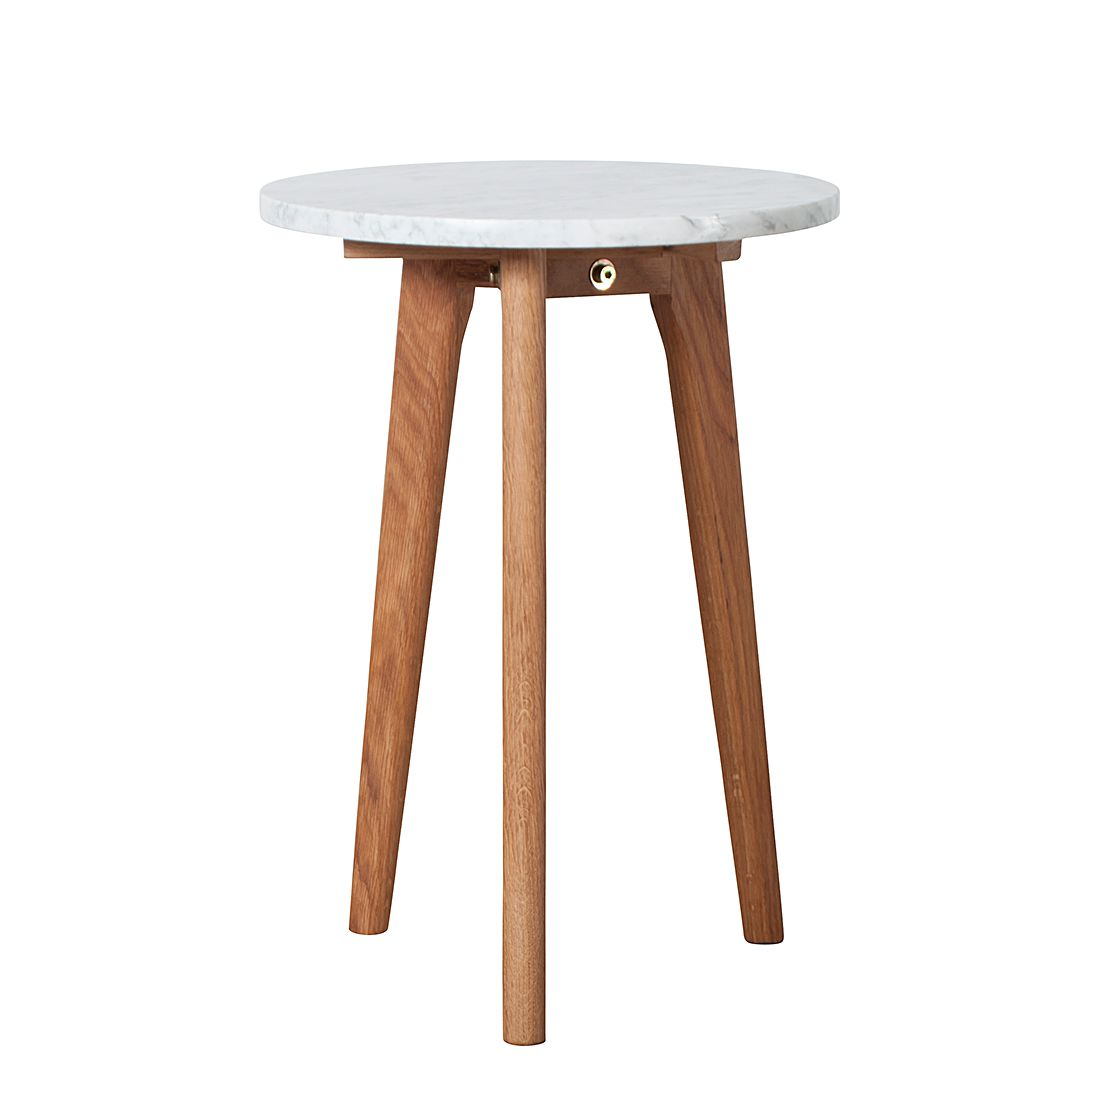 Table d'appoint Stone S